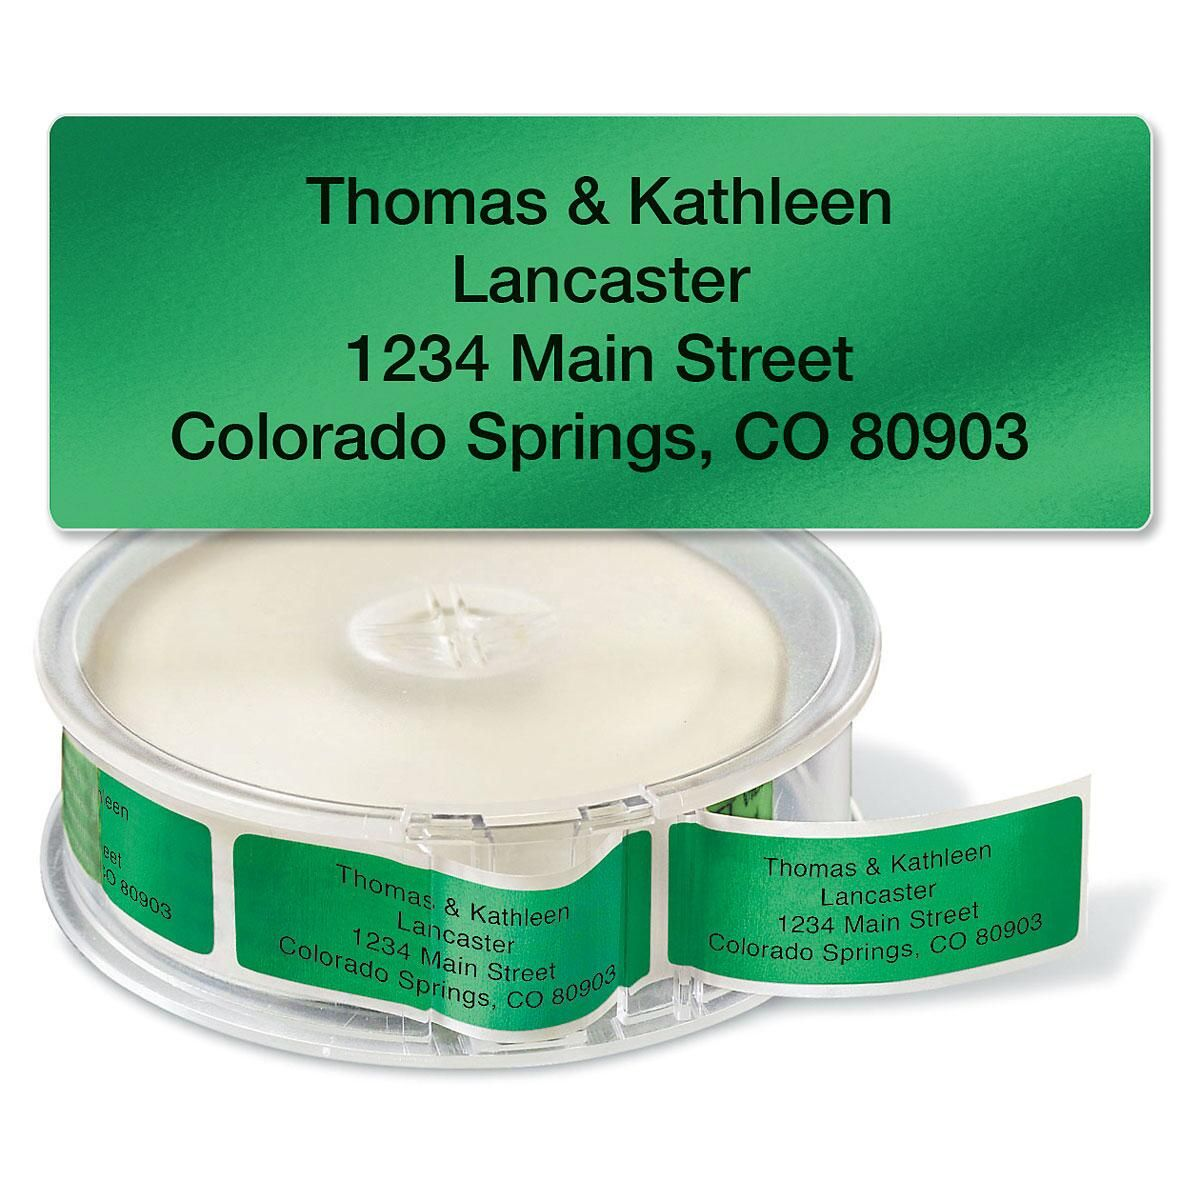 Green Foil Rolled Return Address Labels